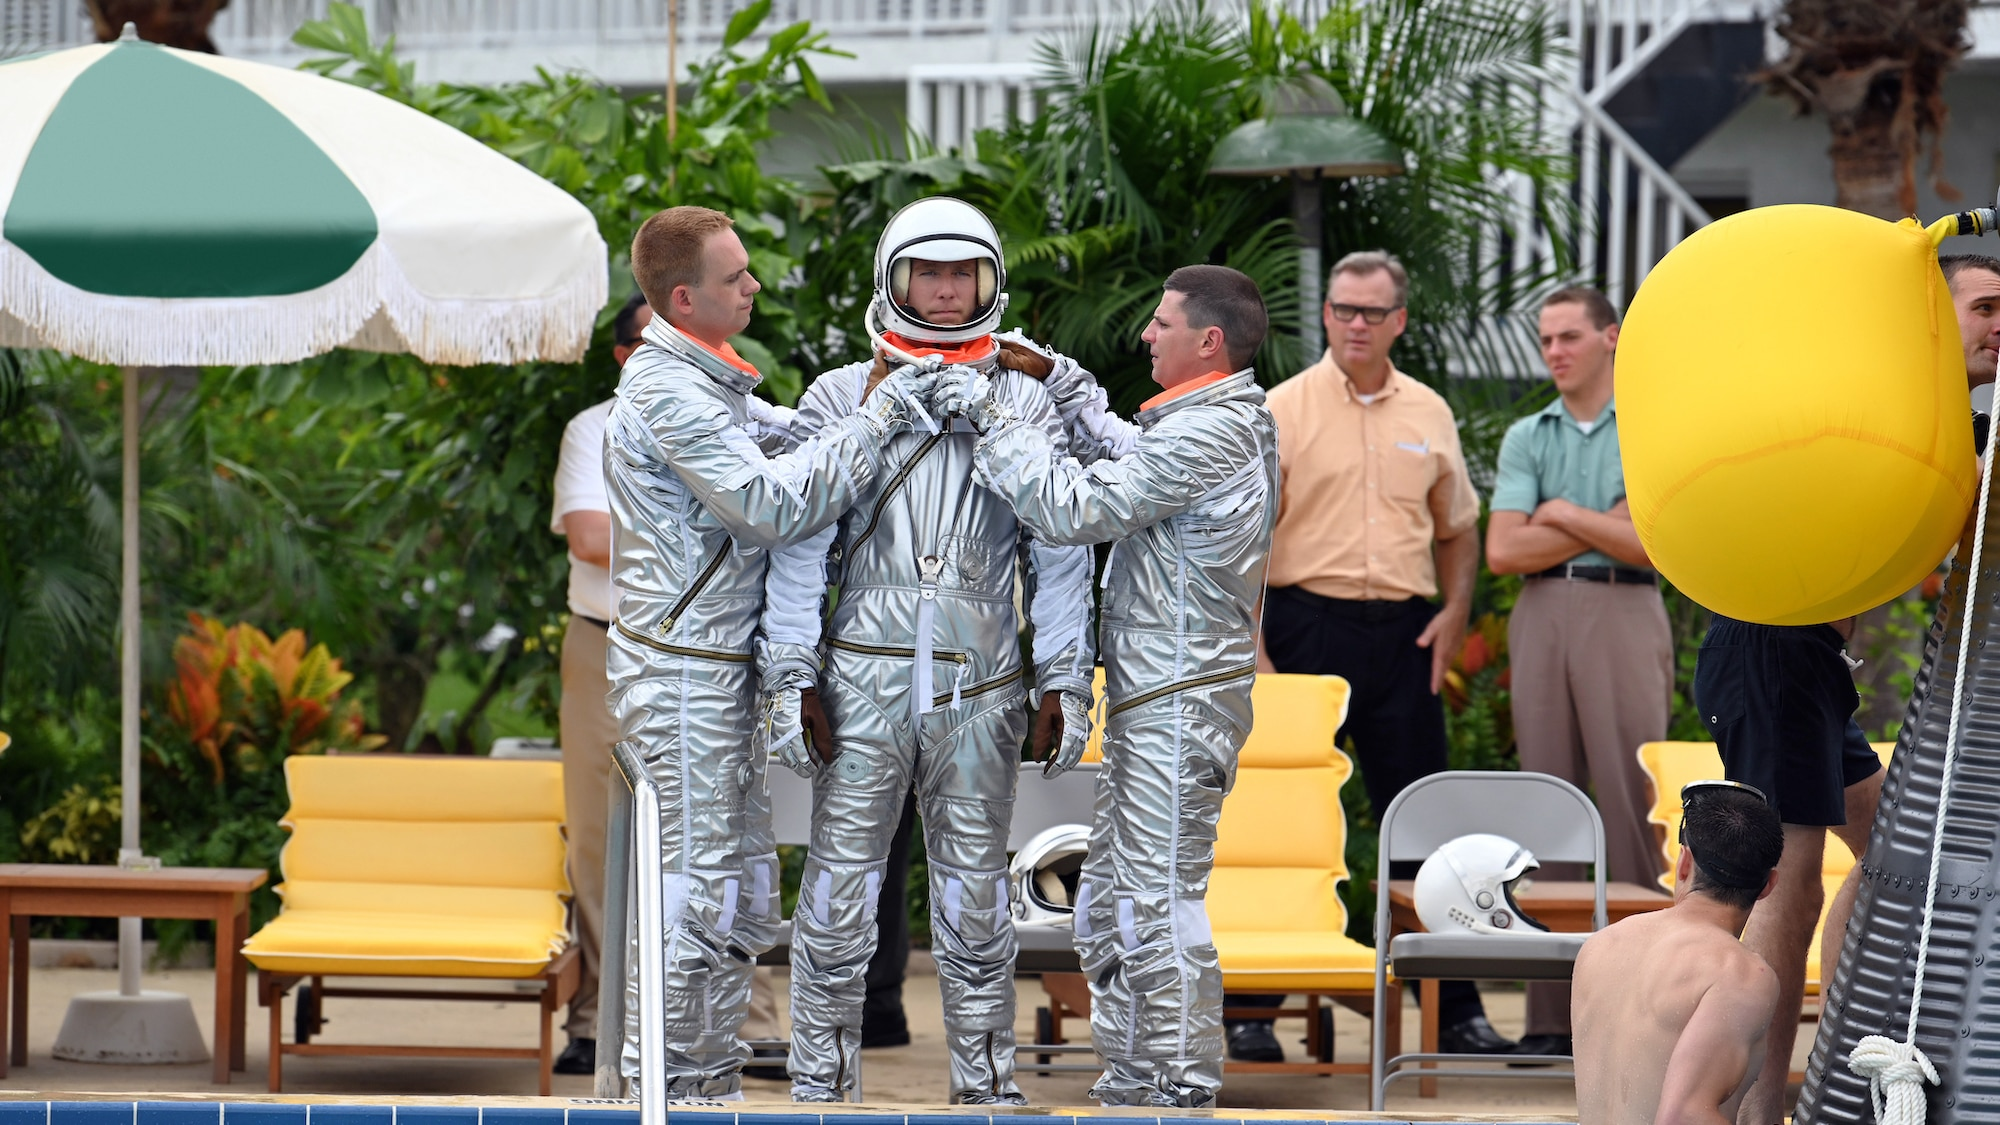 Center L to R: Patrick J. Adams as John Glenn, Jake McDorman as Alan Shepard and Michael Trotter as Gus Grissom during an emergency procedure demonstration in a swimming pool for Dr. Jerome Wiesner and other members of the President's Science Advisory Committee (not pictured) in National Geographic's THE RIGHT STUFF streaming on Disney+. (Credit: National Geographic/Gene Page)